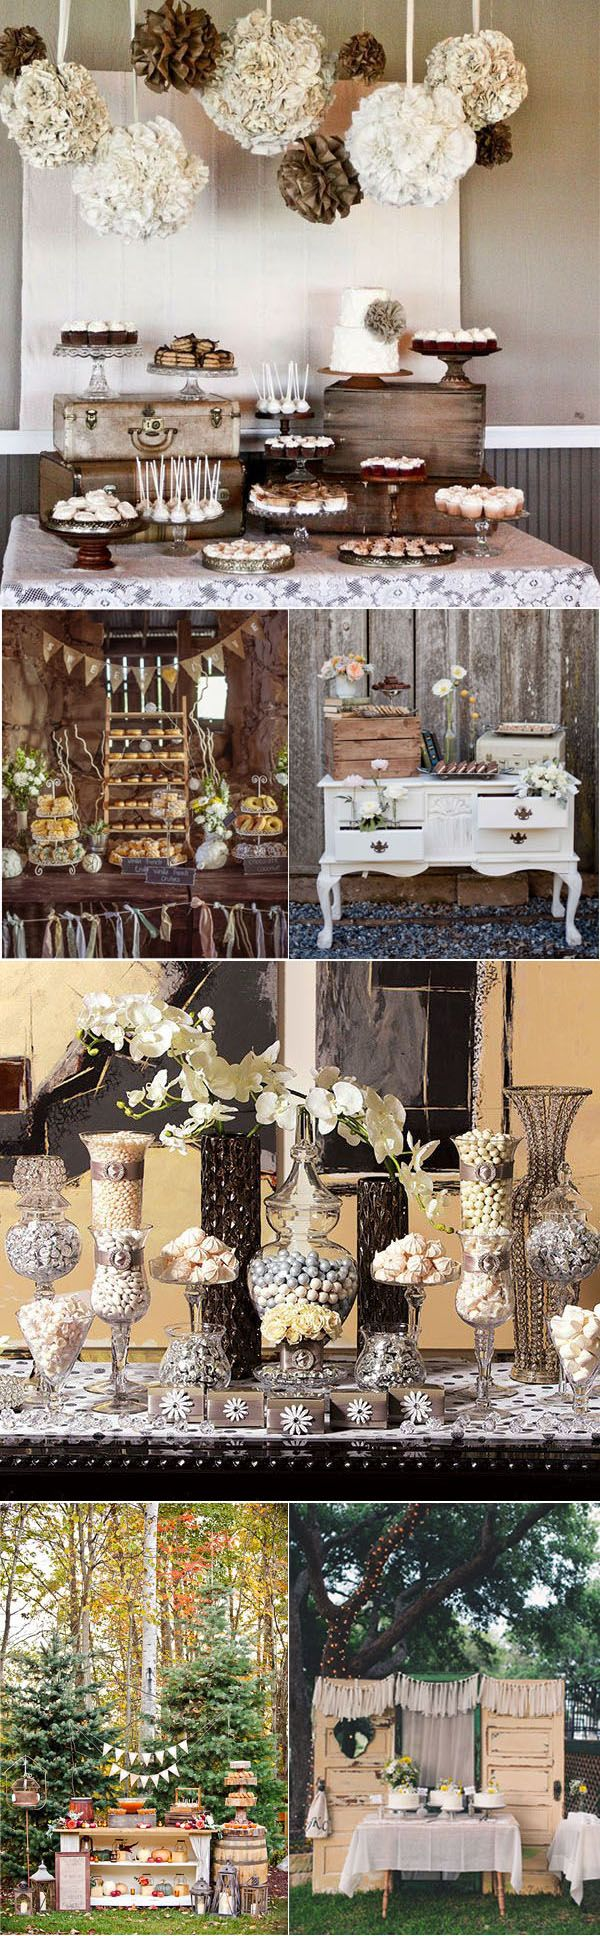 top-6-vintage-chic-rustic-wedding-table-dessert-ideas.jpg (600×1936)